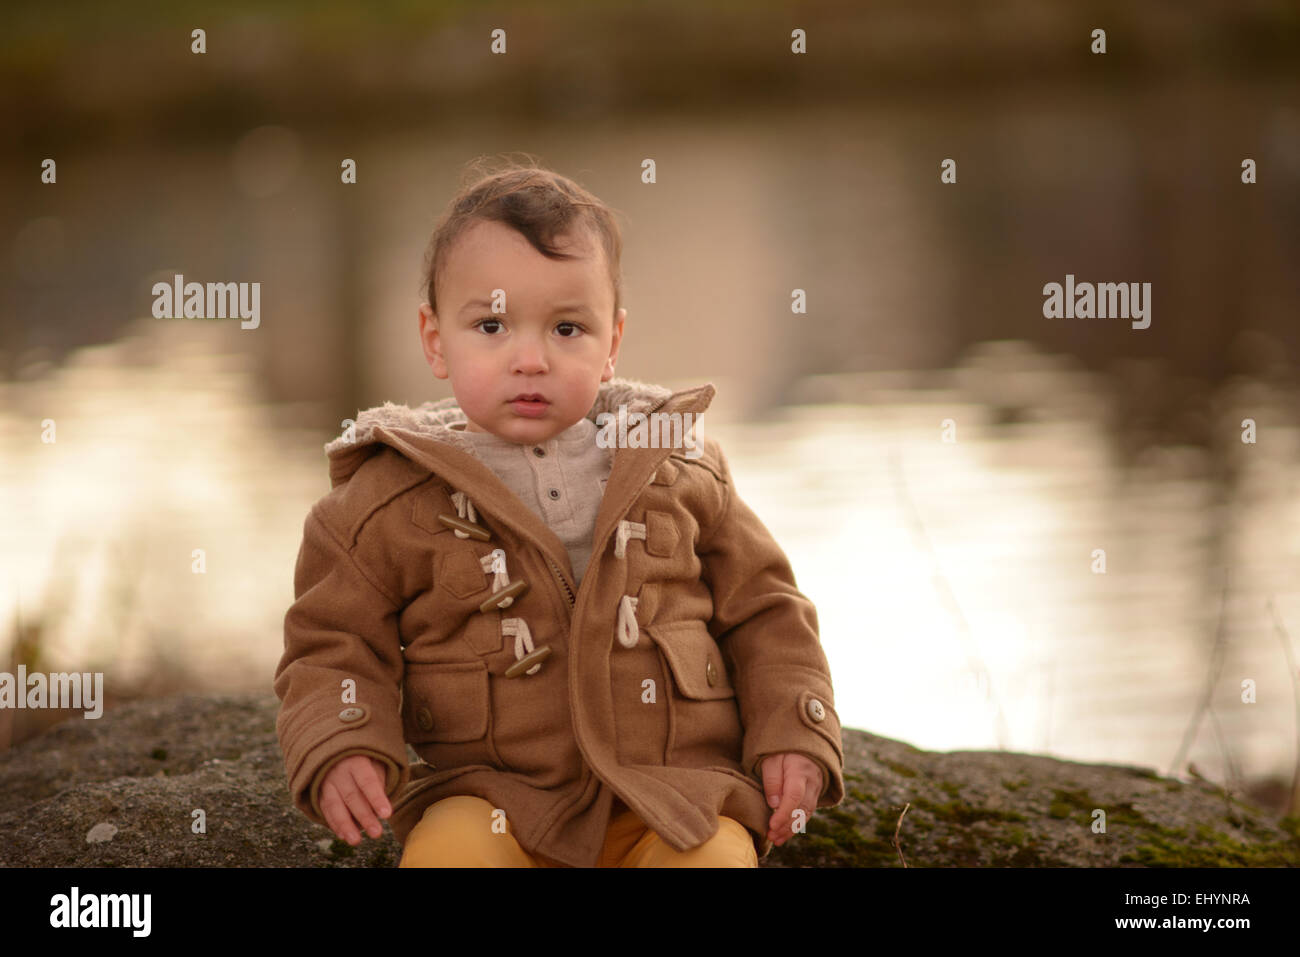 Baby boy sitting on a rock - Stock Image